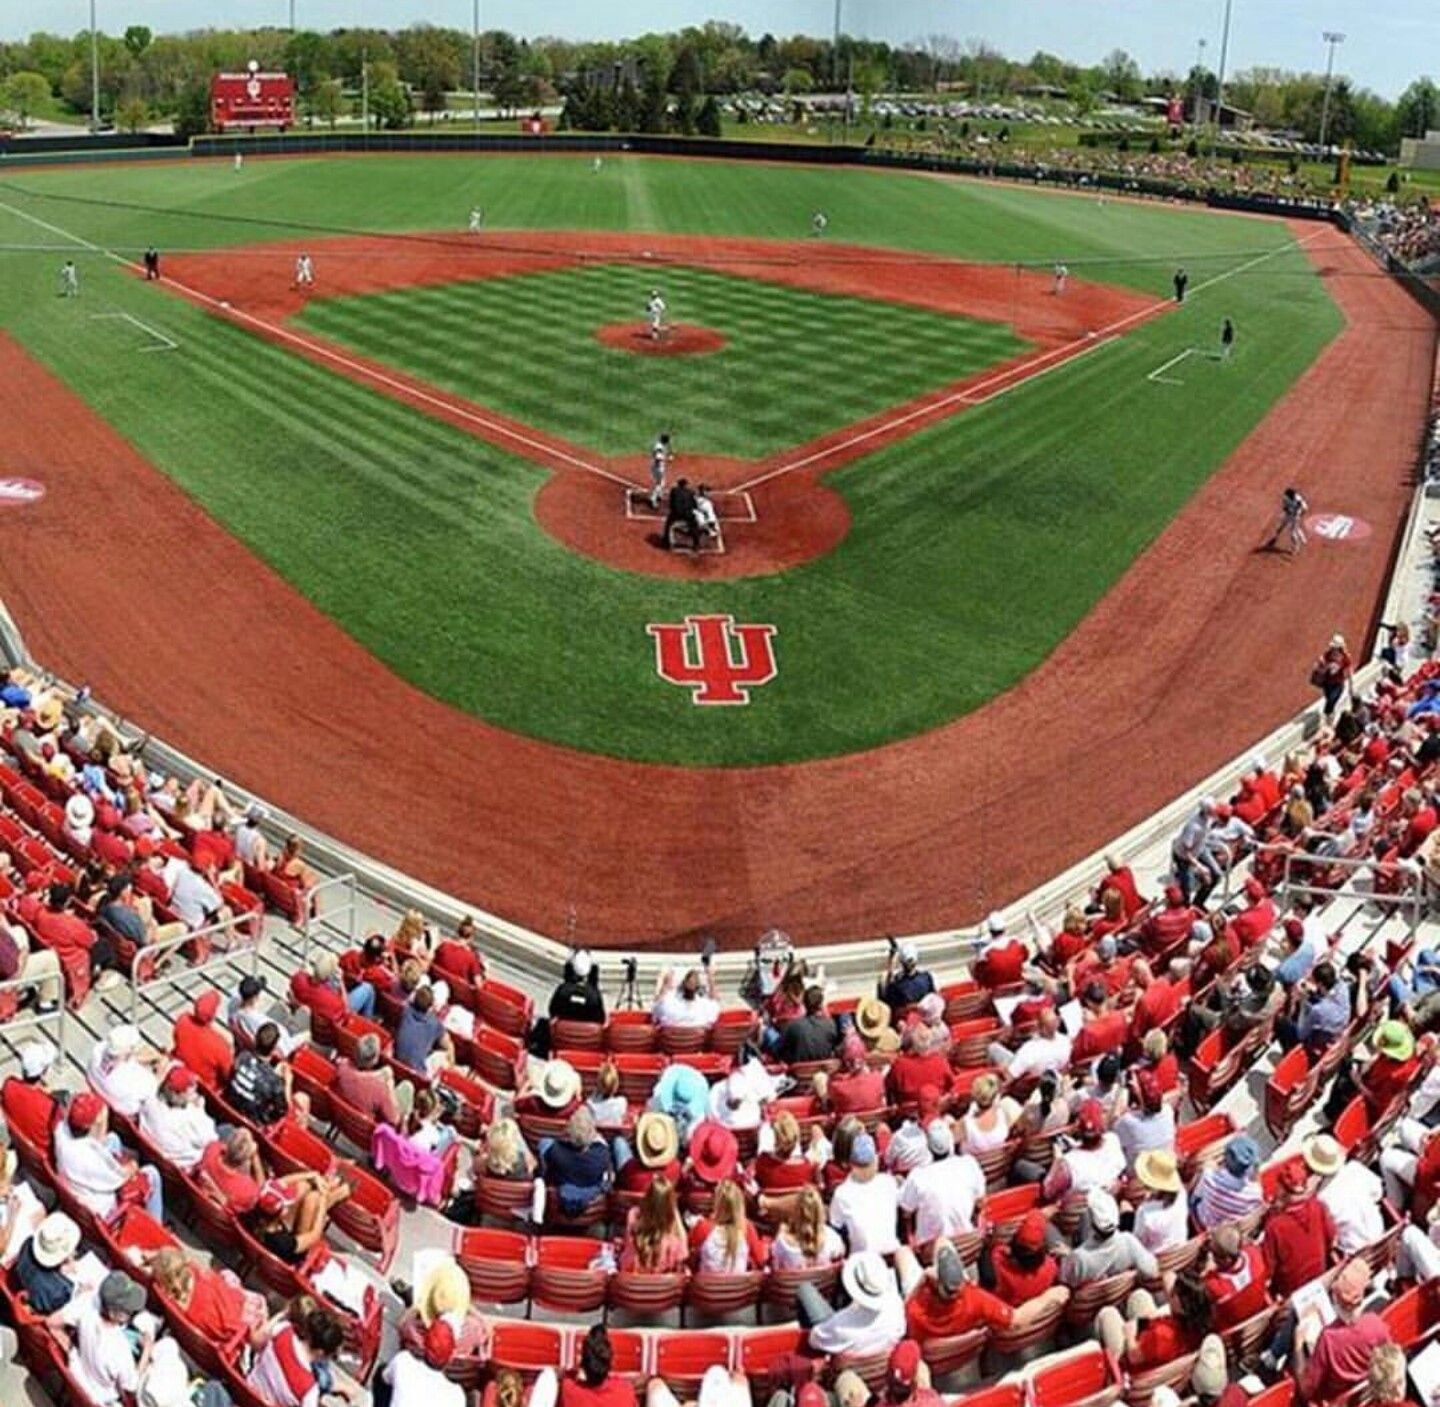 Pin By Randy Champion On Hoosiernation Indiana University Baseball Field College Baseball